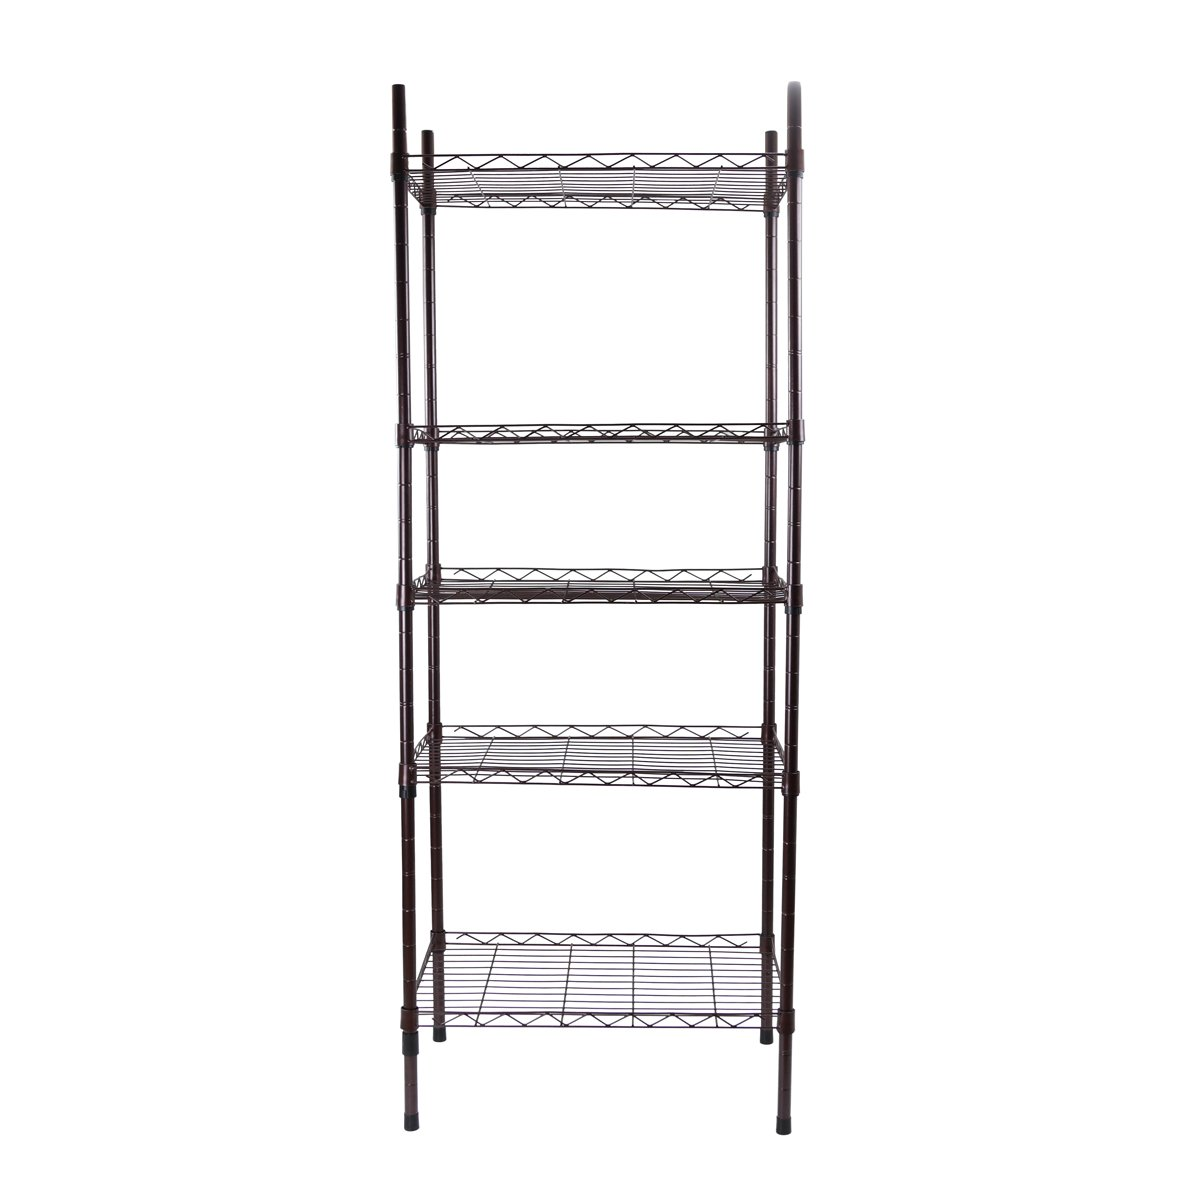 Yontree 5-Tier Wire Shelving Shelves Unit Steel Storage Rack Baker Rack Kitchen Laundry Organization in Brown on Wheels 15.7x11.8x47.2 Inches